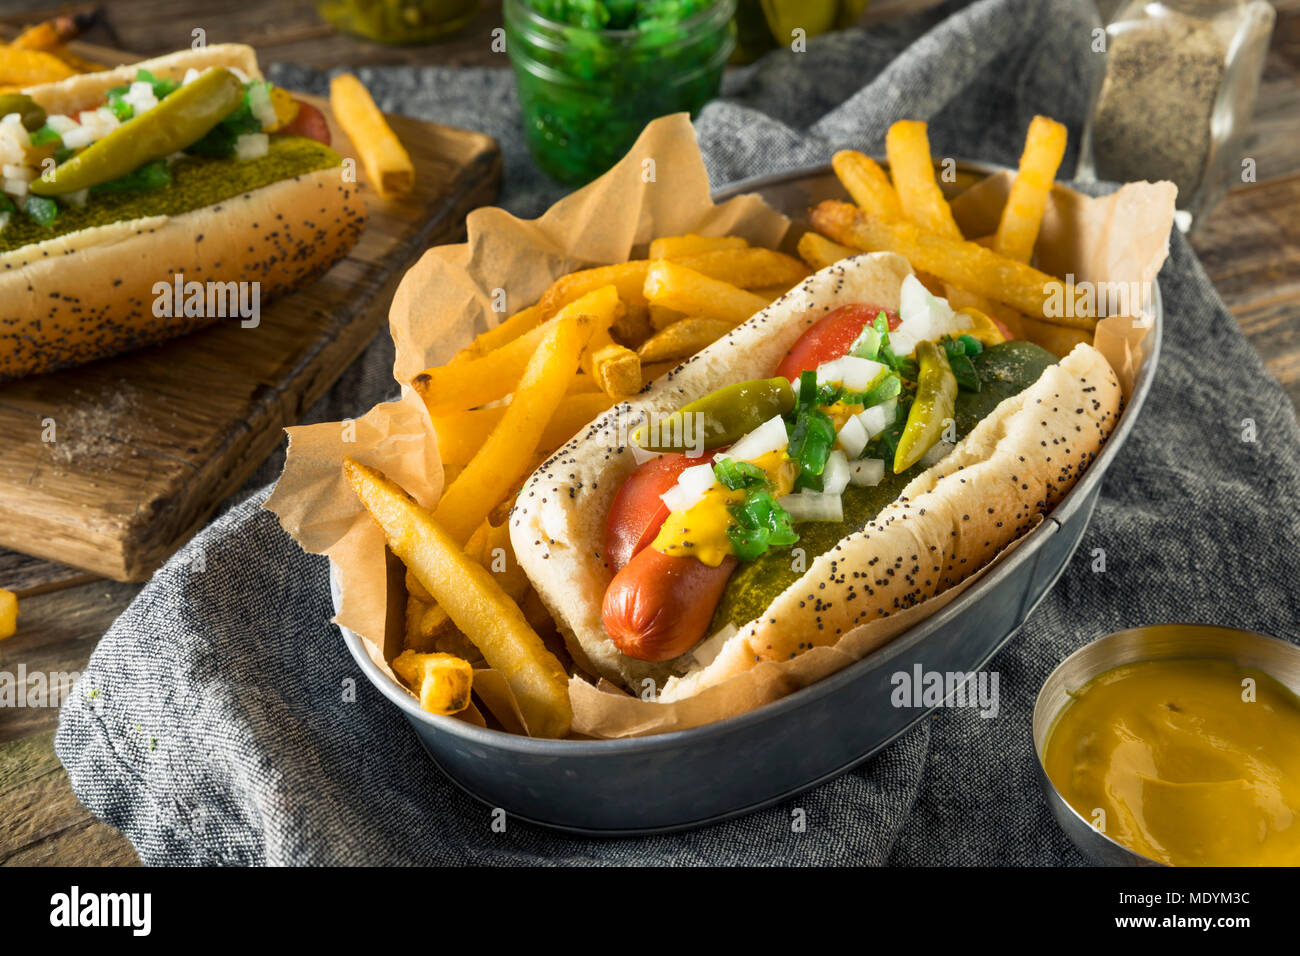 Homemade Chicago Style Hot Dog with Mustard Pickles Relish Tomato and Peppers - Stock Image